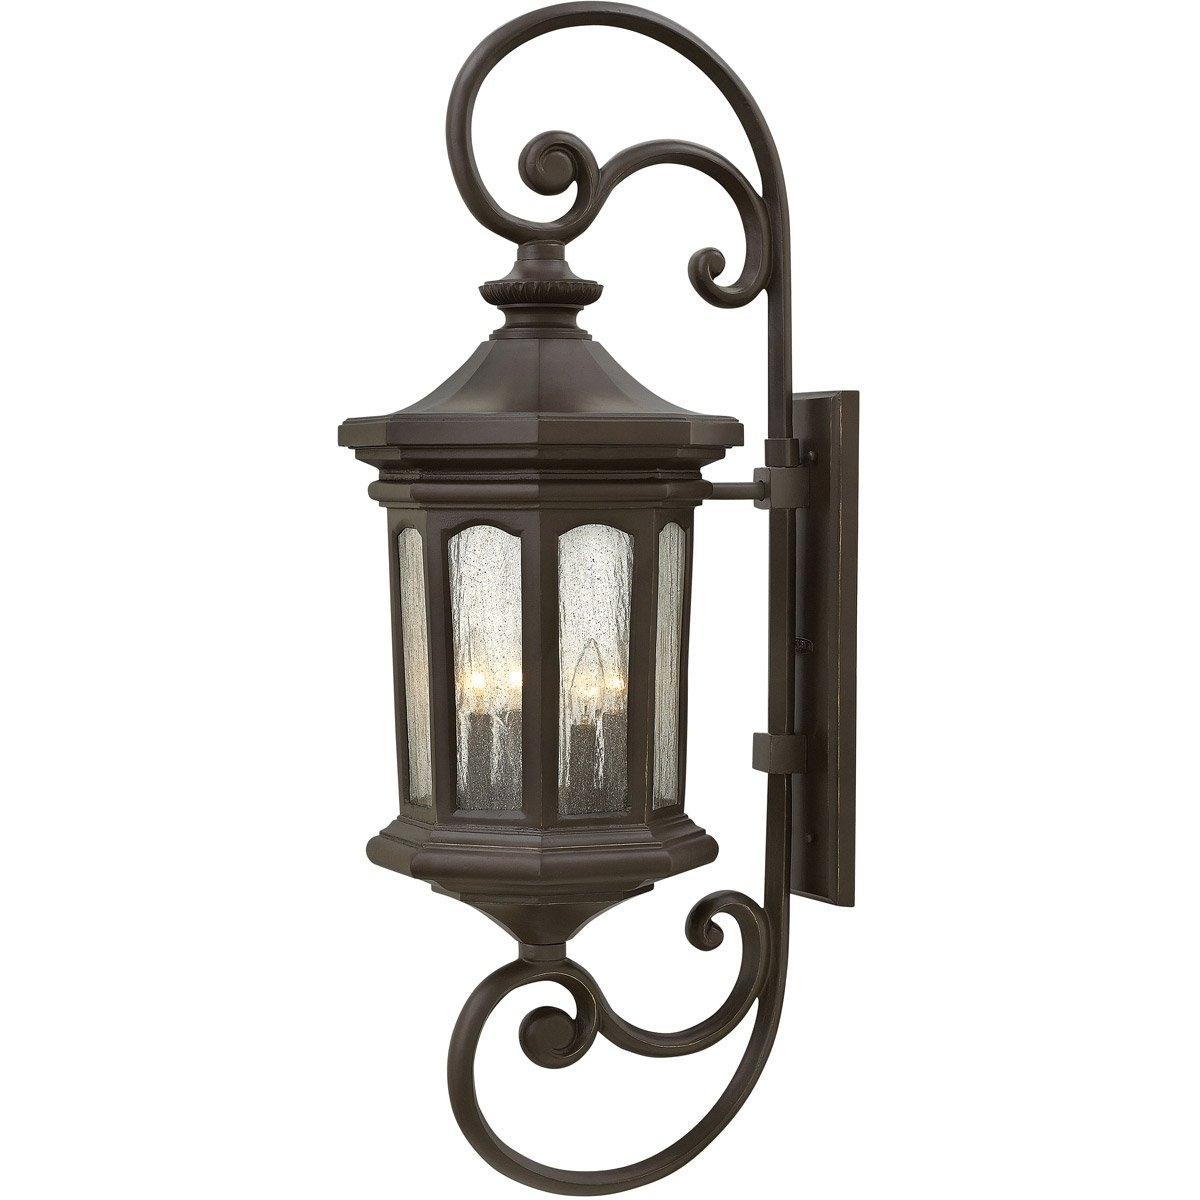 Hinkley Lighting 1609Oz Raley 4 Light 42 Inch Oil Rubbed Bronze Pertaining To Double Wall Mount Hinkley Lighting (#8 of 15)